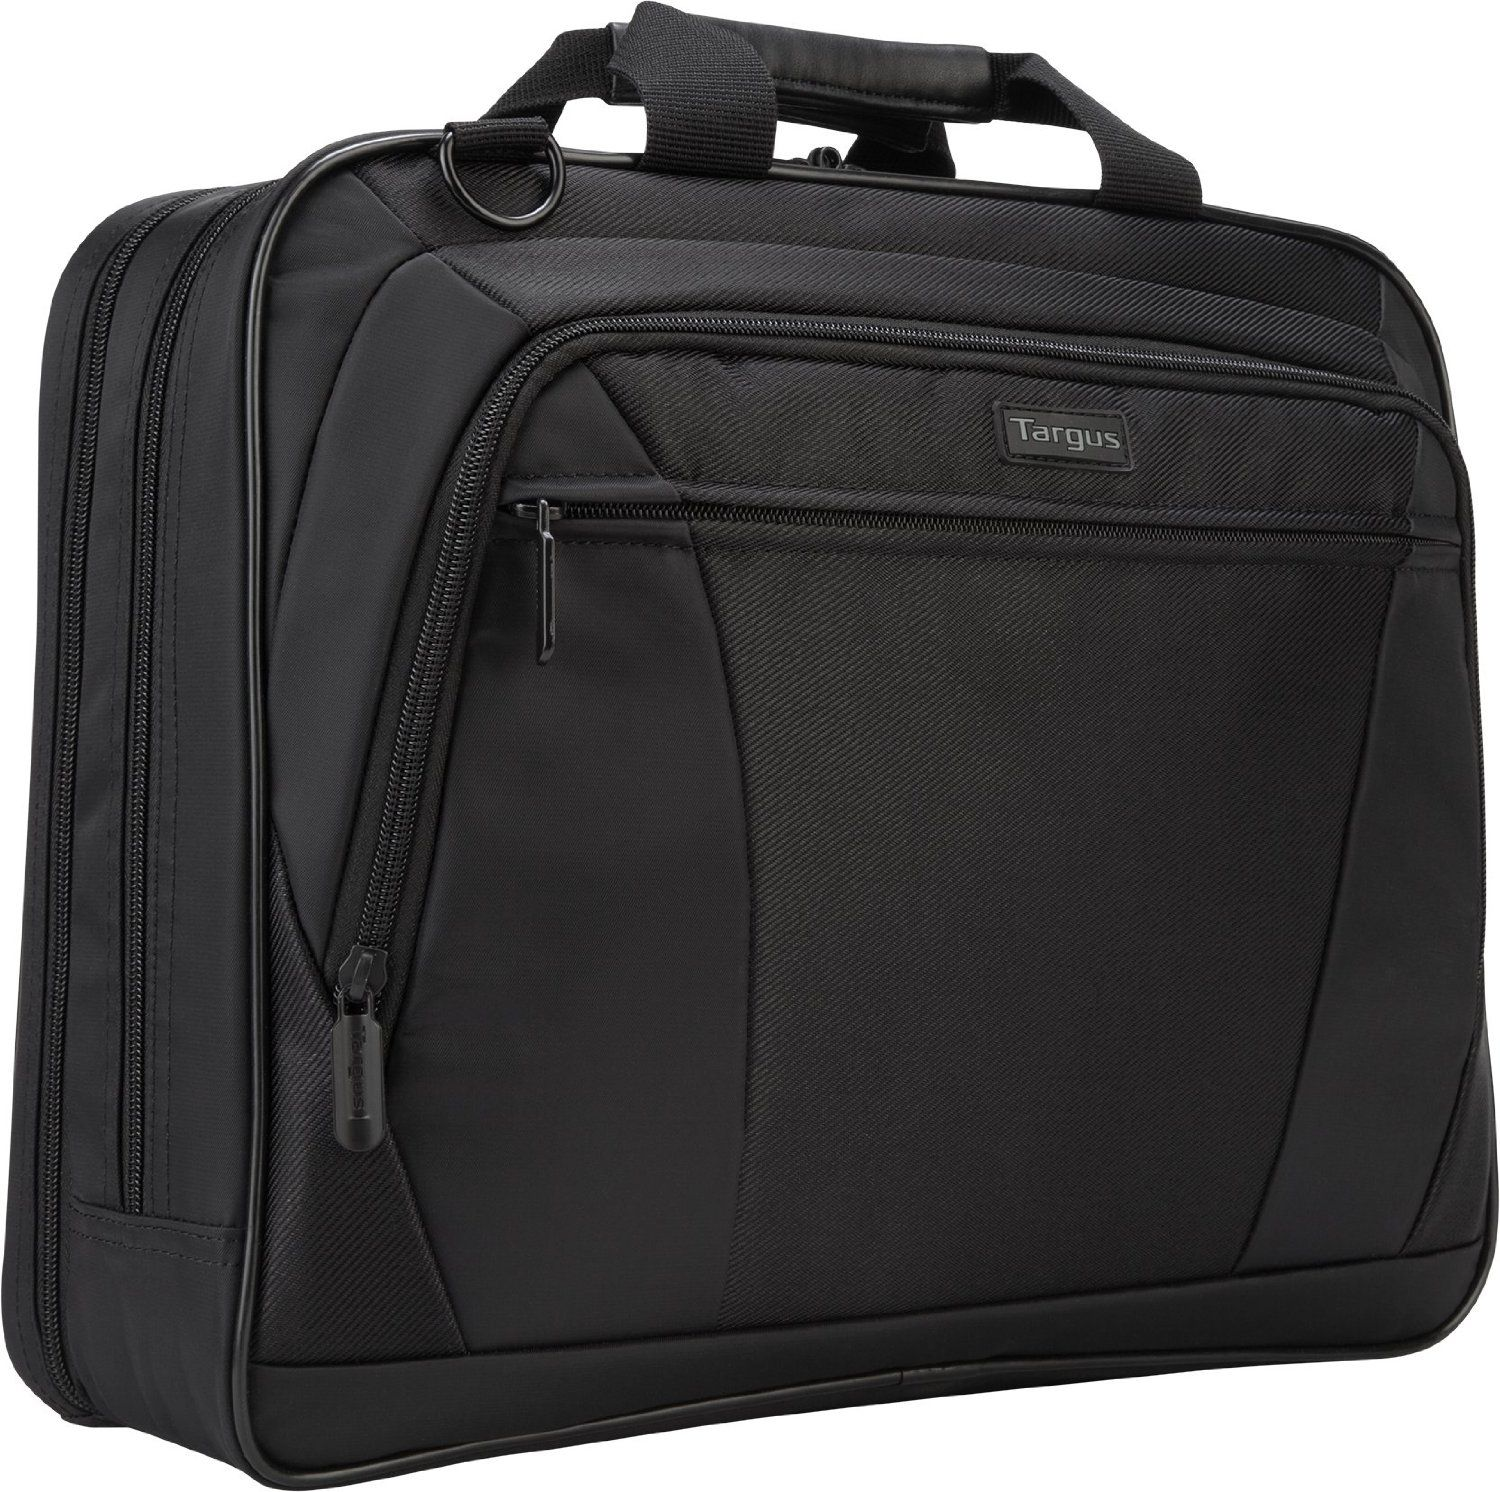 Amazon.com: Targus CityLite Top-Loading Case Designed for 16-Inch Laptop, Black (TBT053US): Computers & Accessories